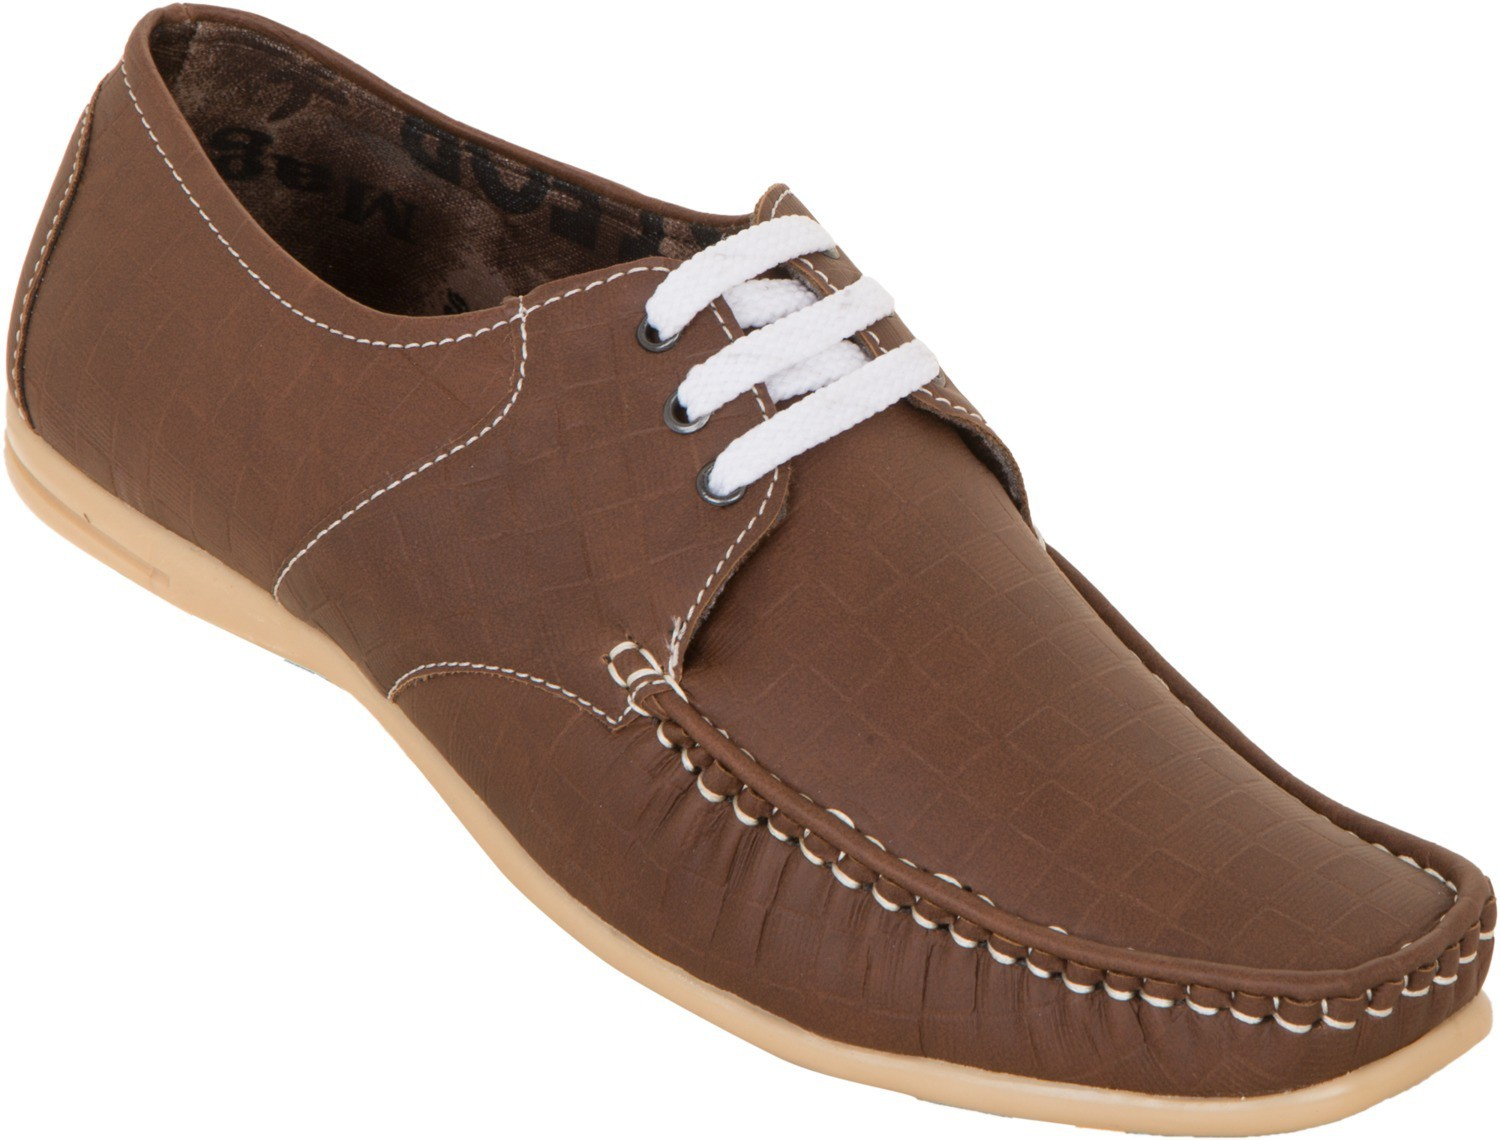 Zovi Brown With Textured Check Boxes Casual Shoes(Brown)